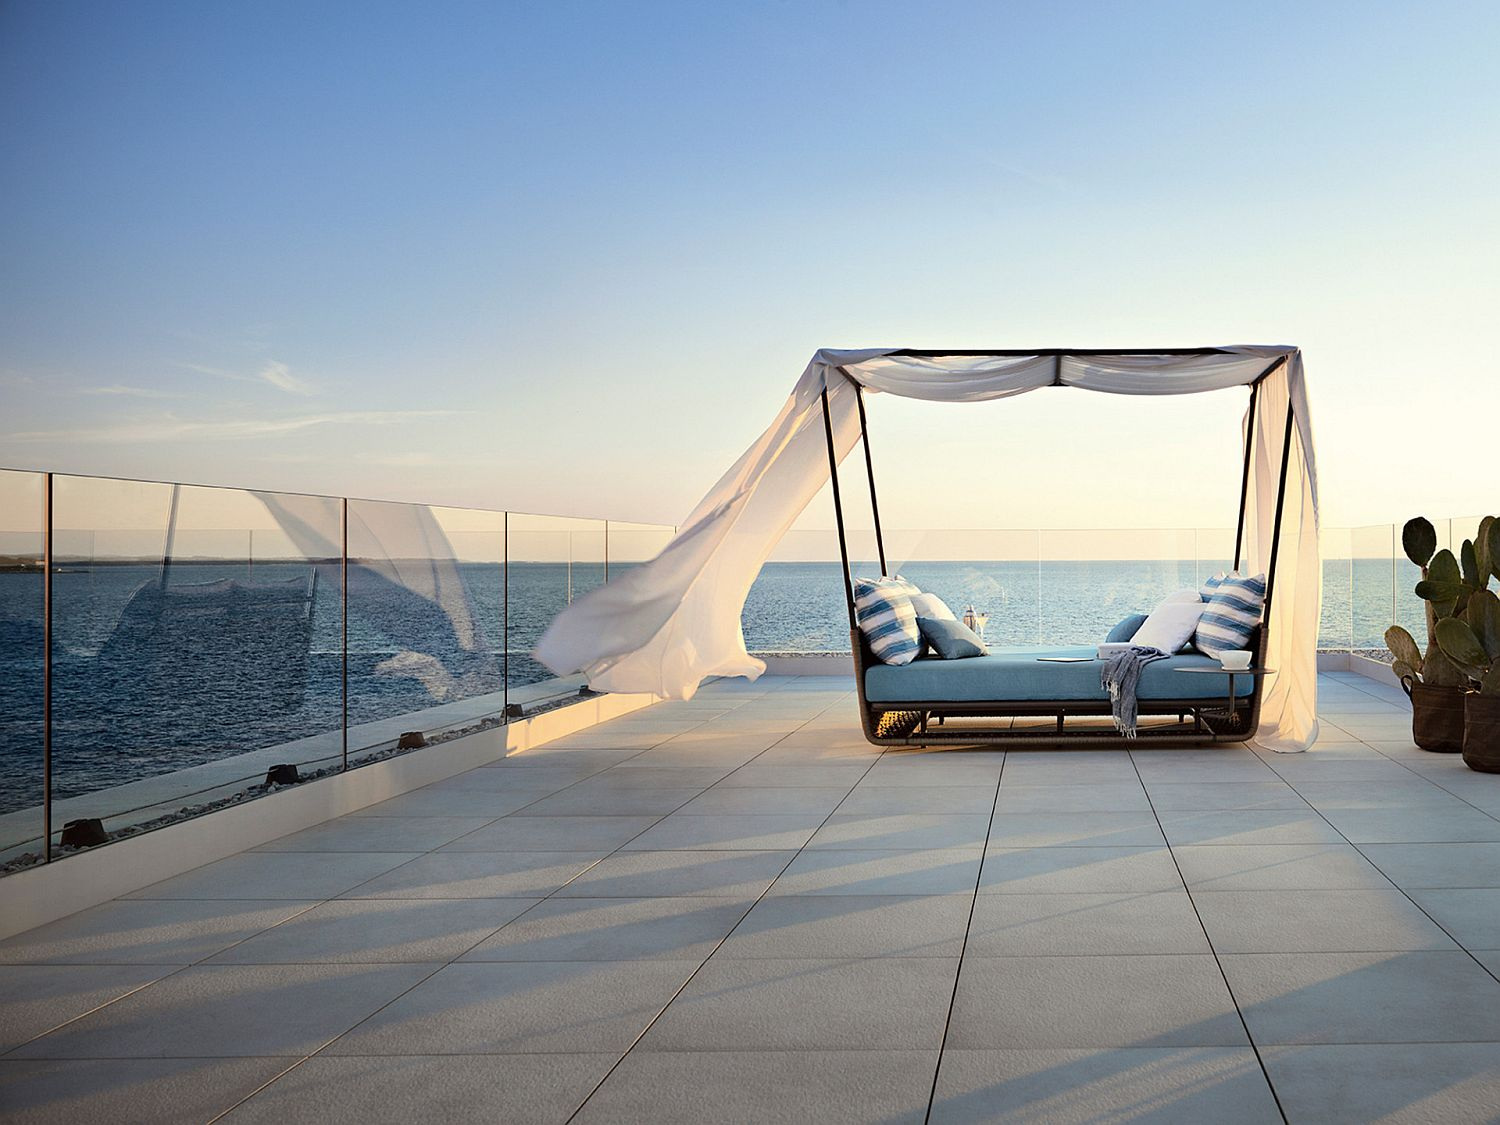 Give your oceanside deck a perfect lounger with the Portofino